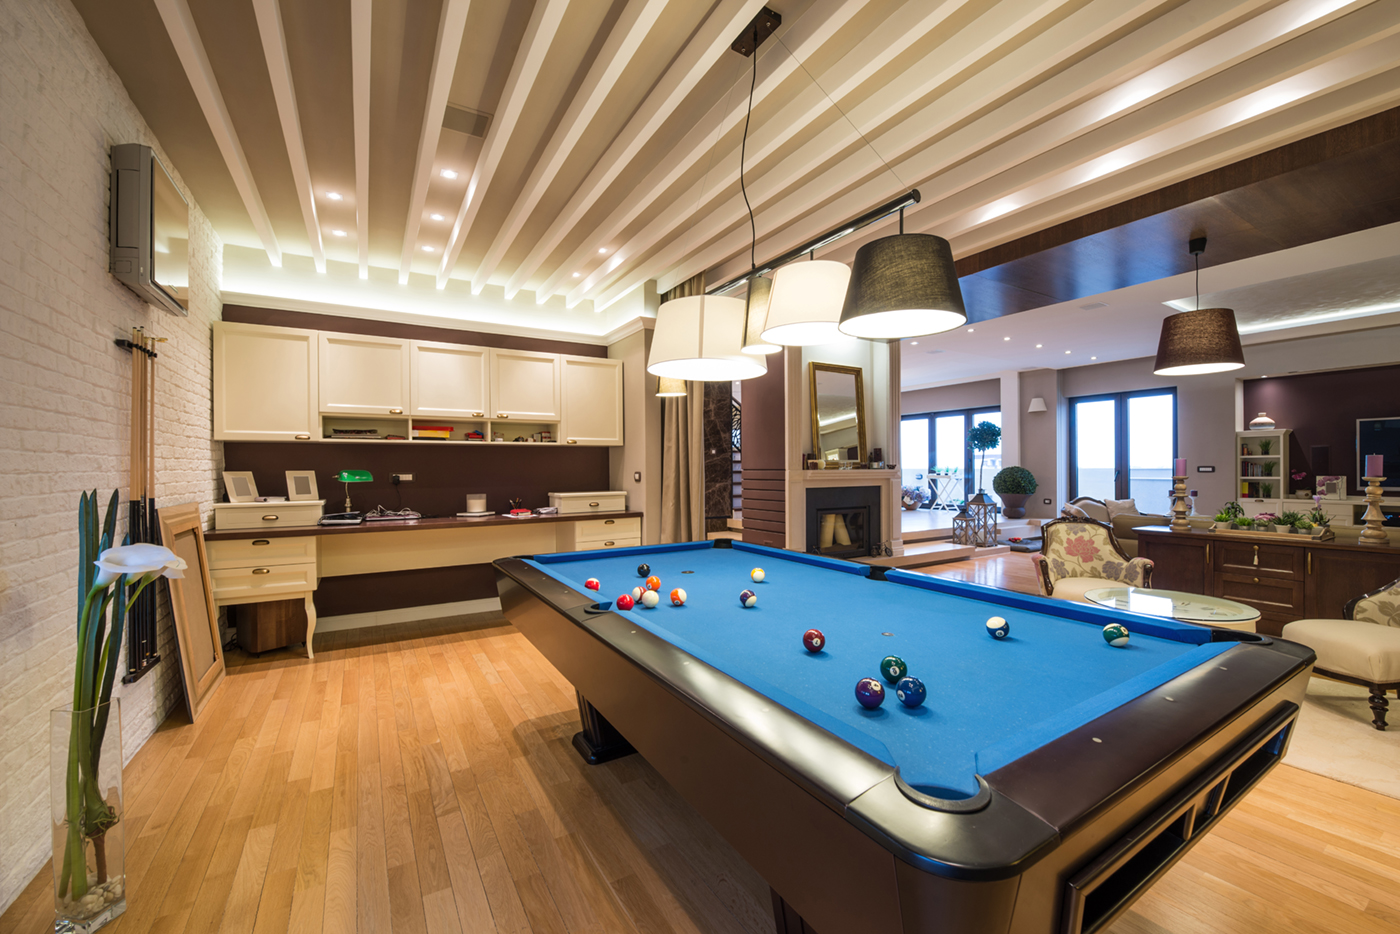 Basement entertainment room - Ask A Pro How To Turn Basement Into A Sport Room